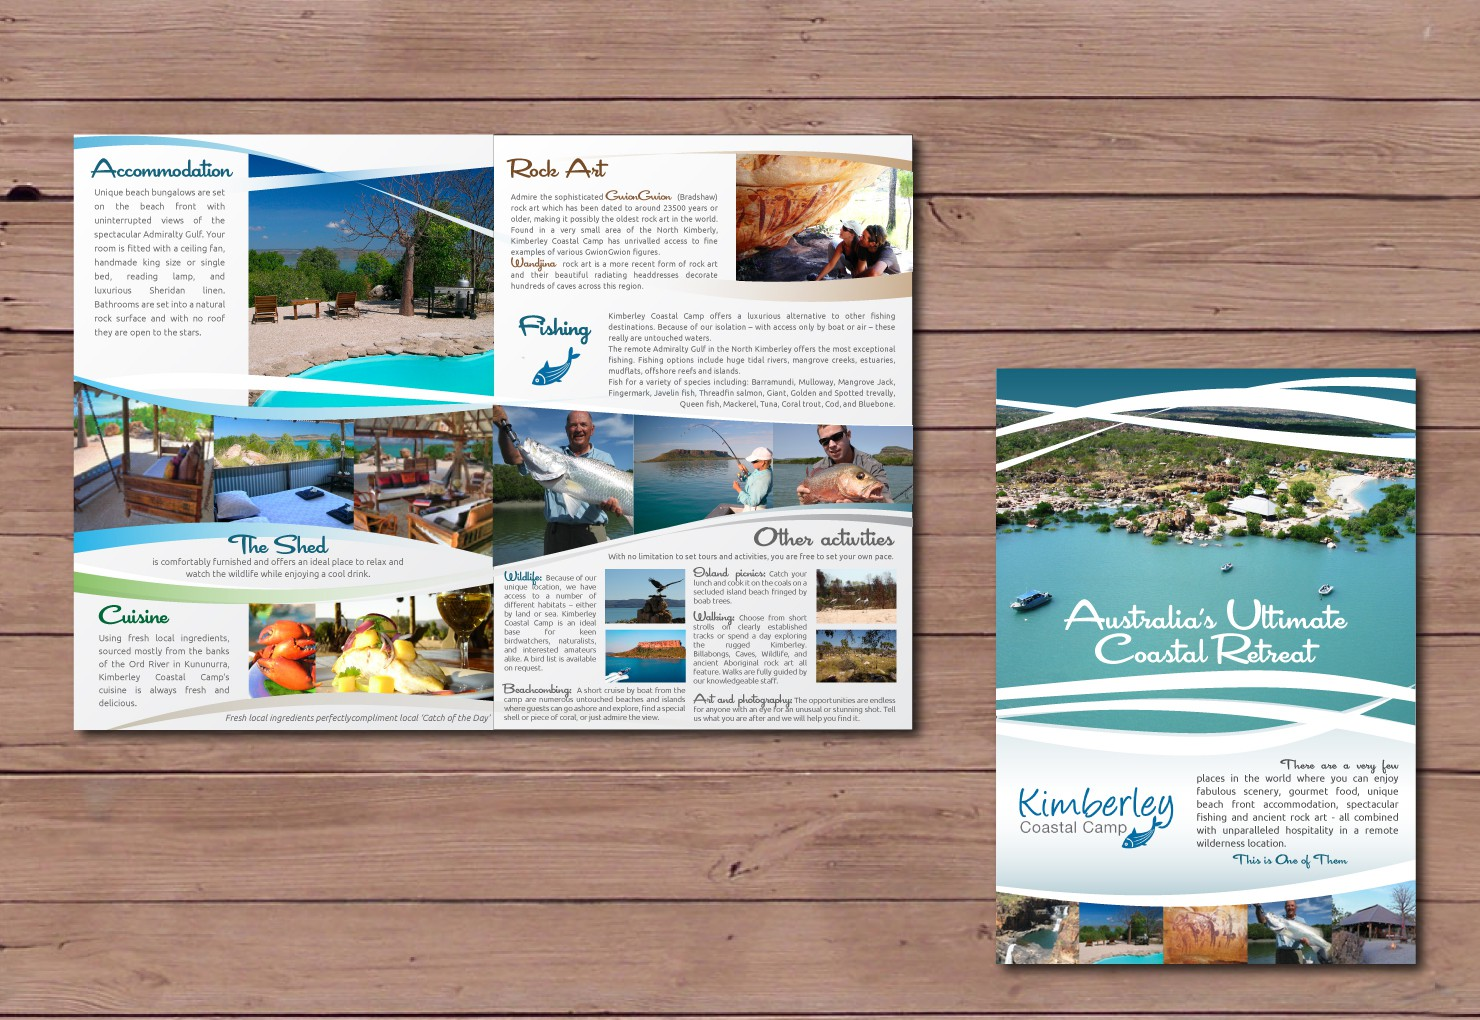 Kimberley Coastal Camp needs a new print or packaging design